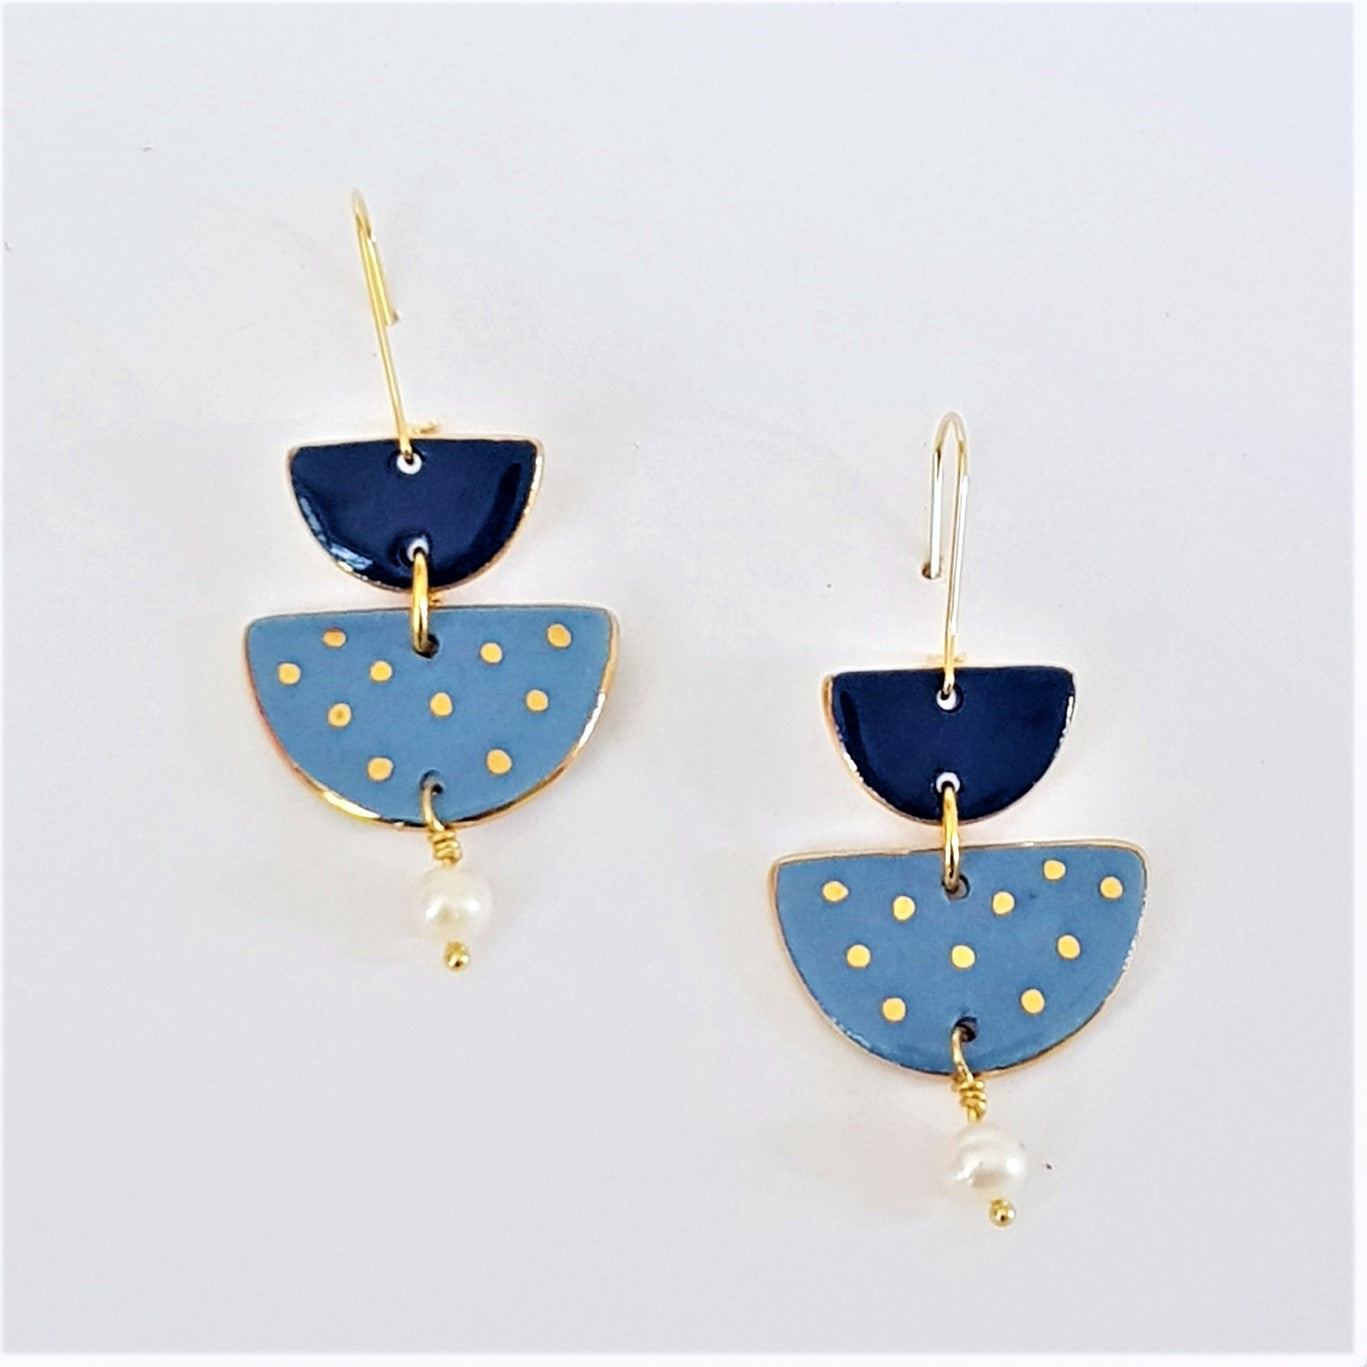 Two tiered porcelain earrings with pearls and gold - dark and light blue.